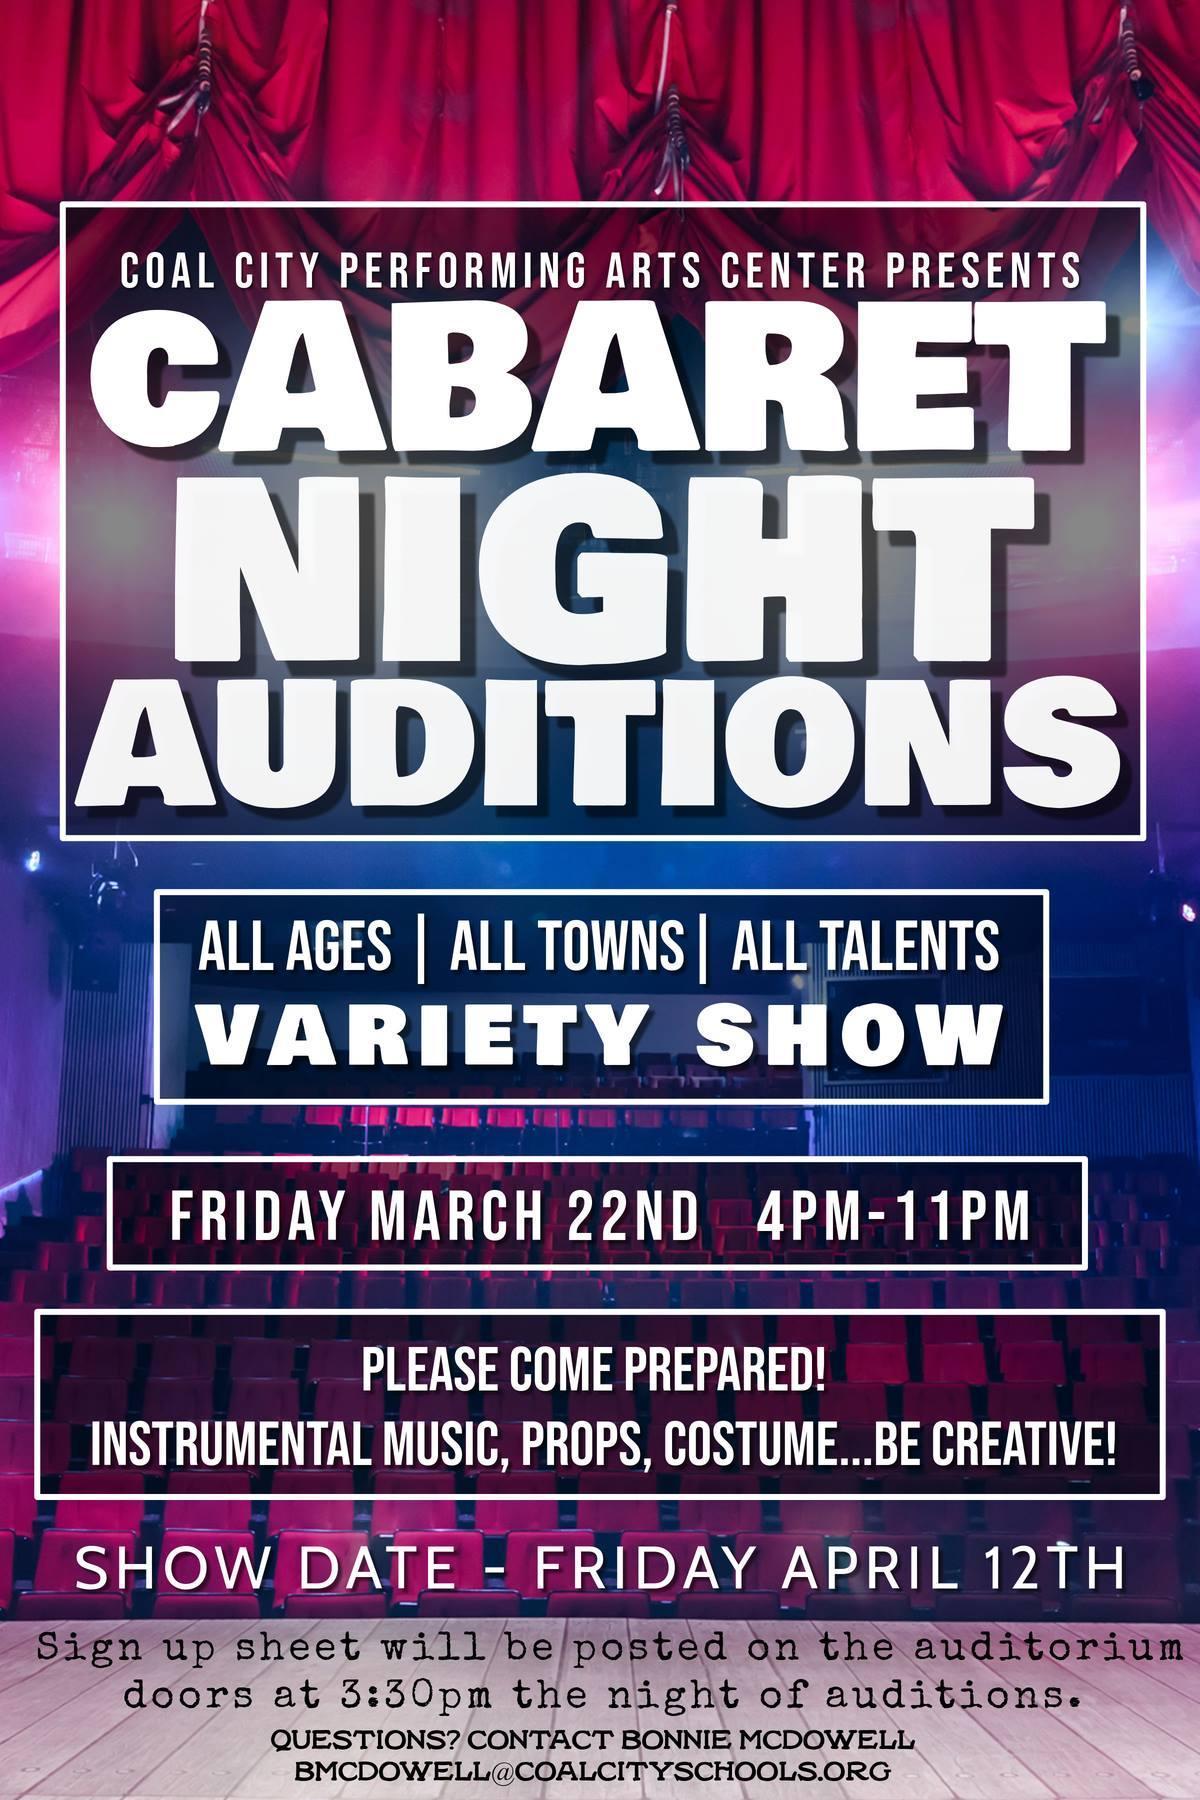 Cabaret Night Auditions